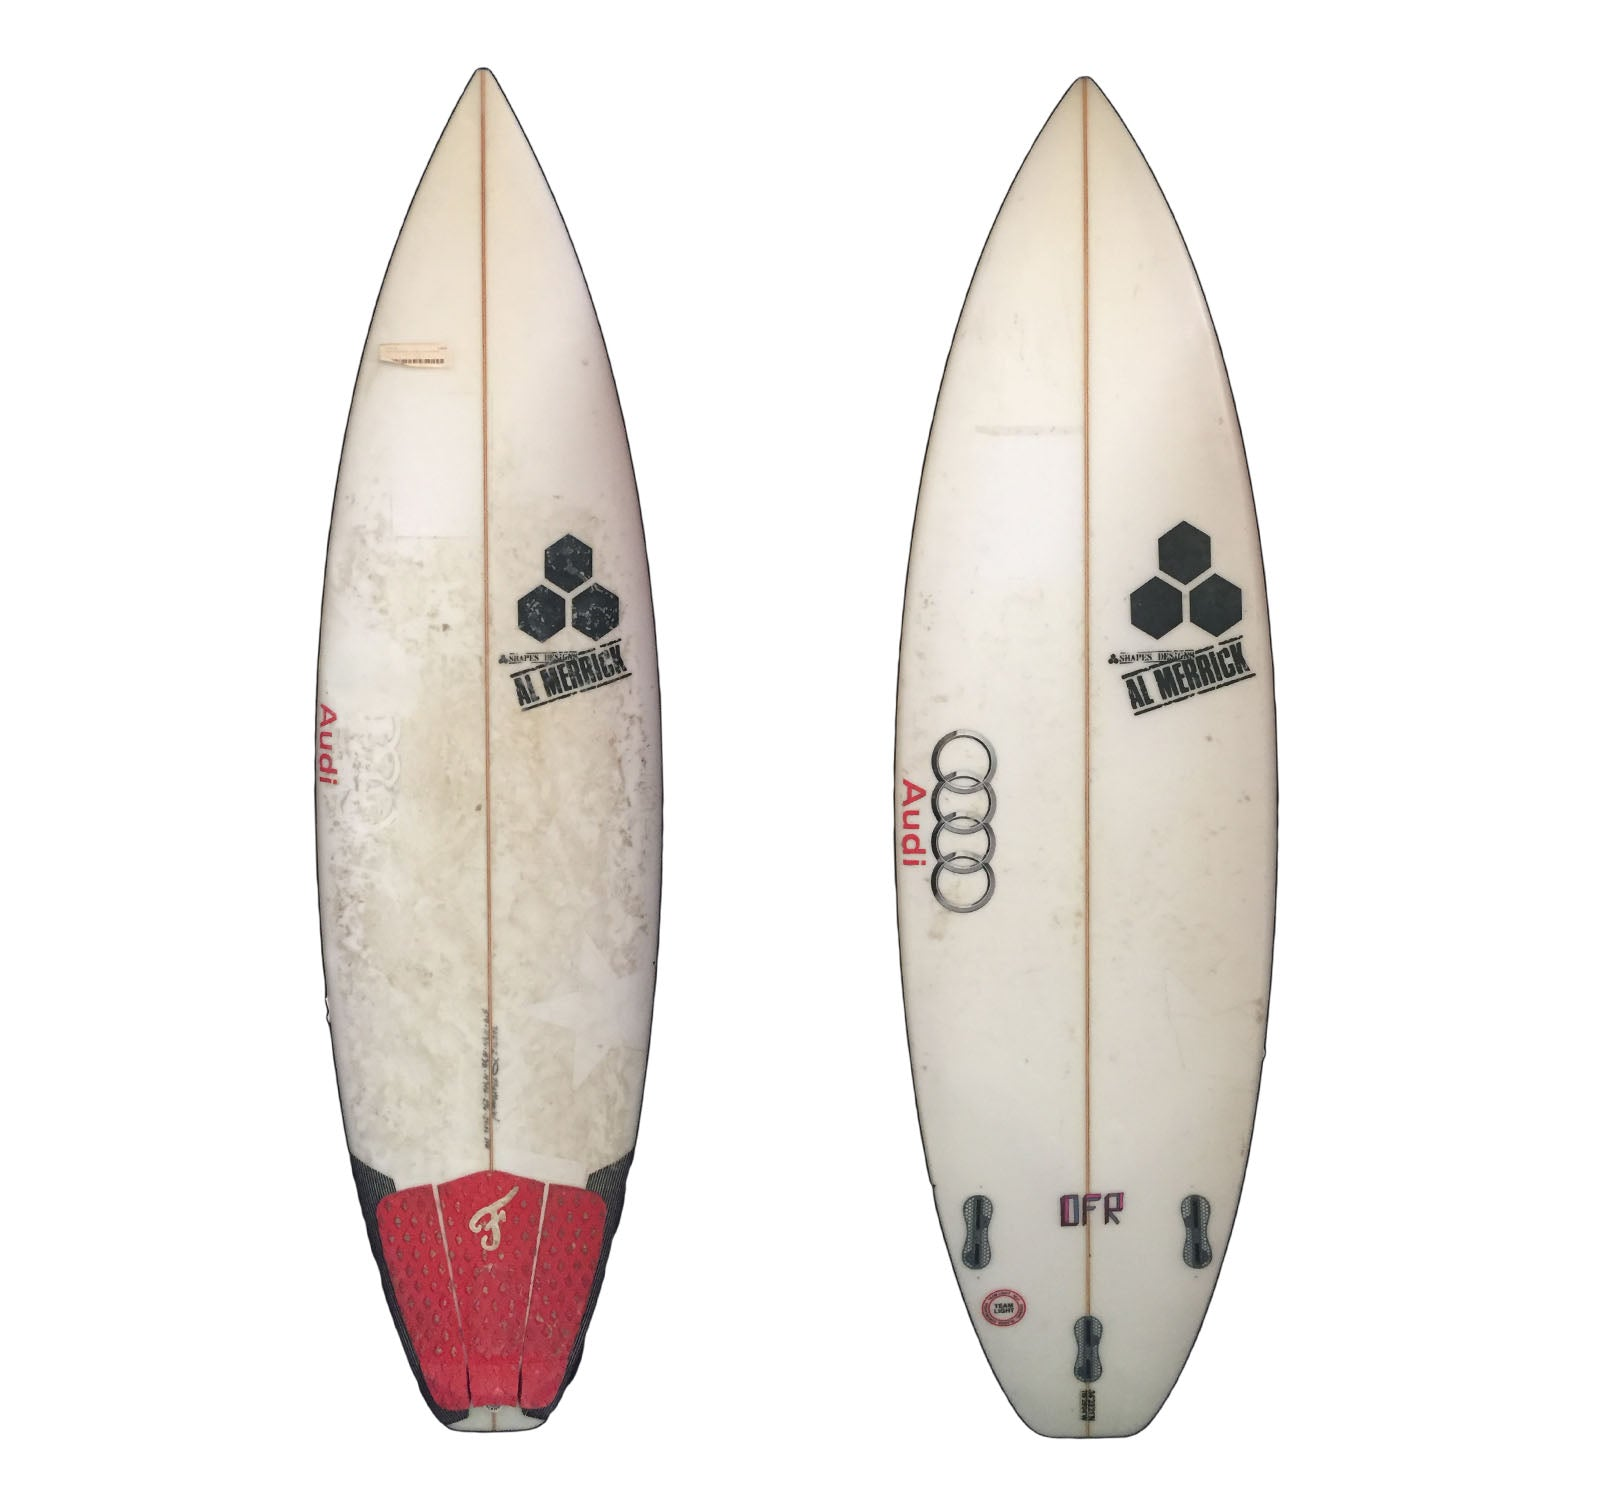 Channel Islands DFR 5'9 Used Surfboard